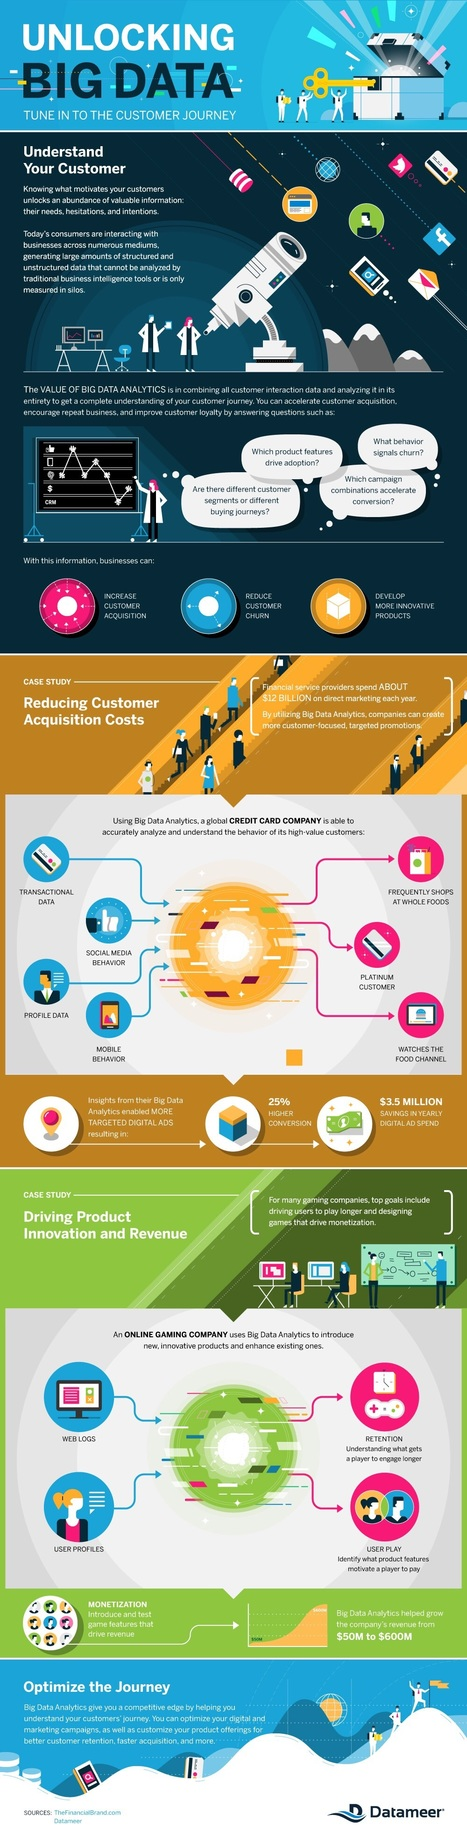 Why Business That Use 'Big Data' Make More Money #Infographic | BIG data, Data Mining, Predictive Modeling, Visualization | Scoop.it